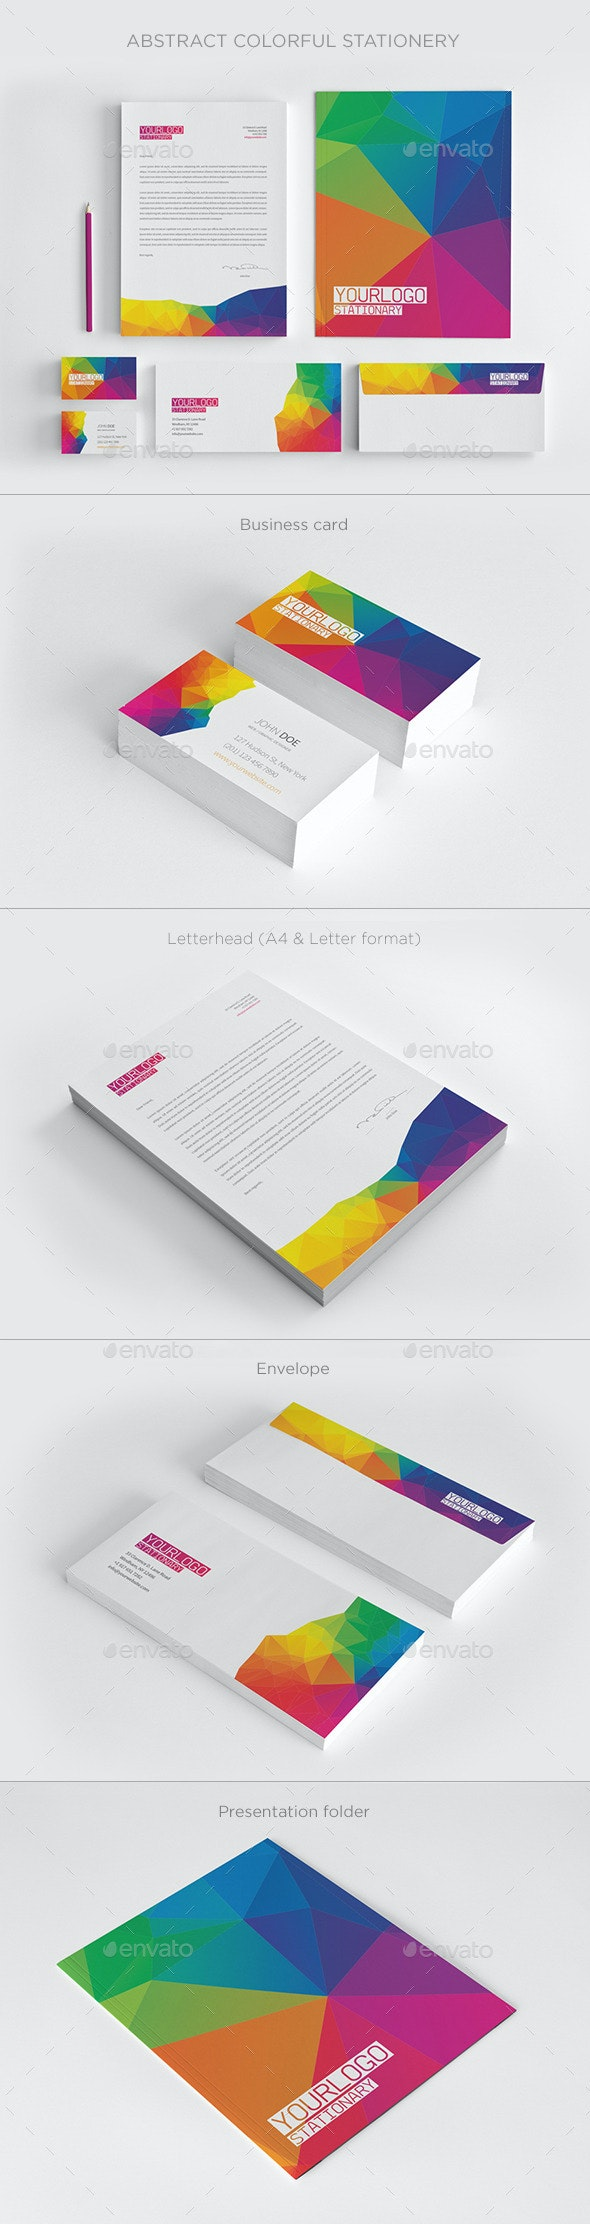 Abstract Colorful Stationery - Stationery Print Templates